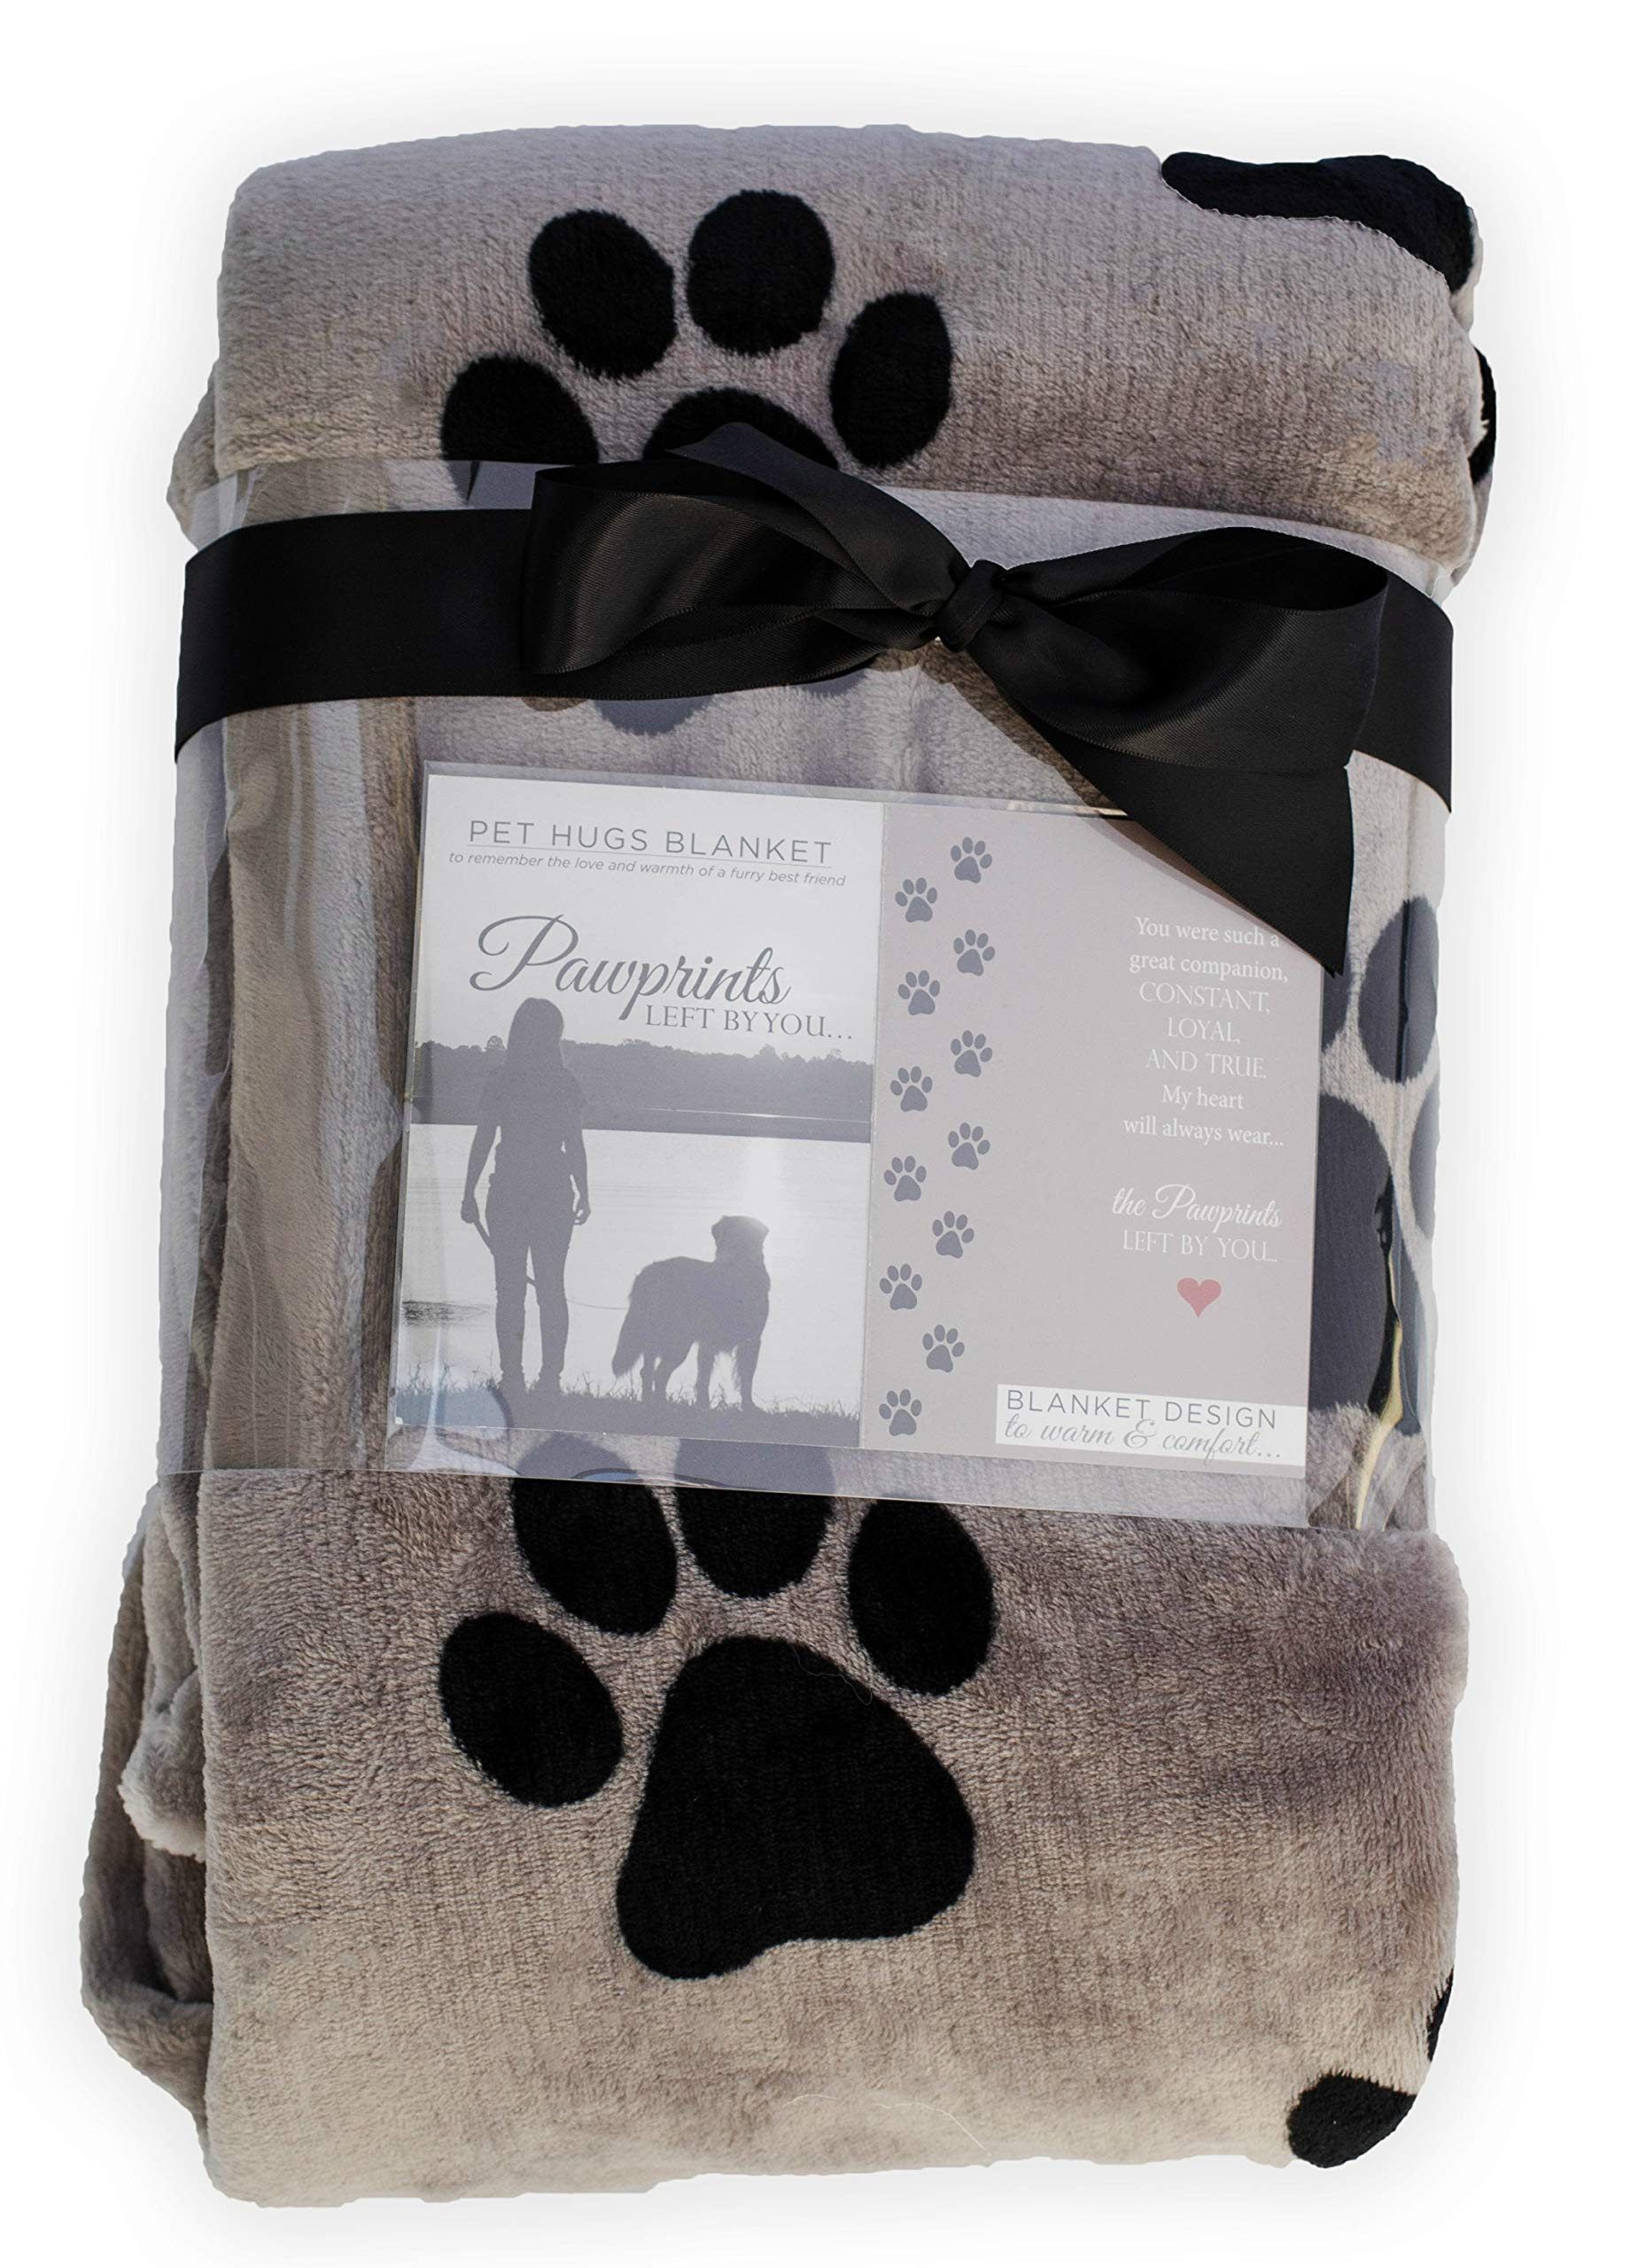 Pawprints Left by You Pet Memorial Blanket with Heartfelt Sentiment - Comforting Pet Loss/Pet Bereavement Gift (Non Personalized) 1